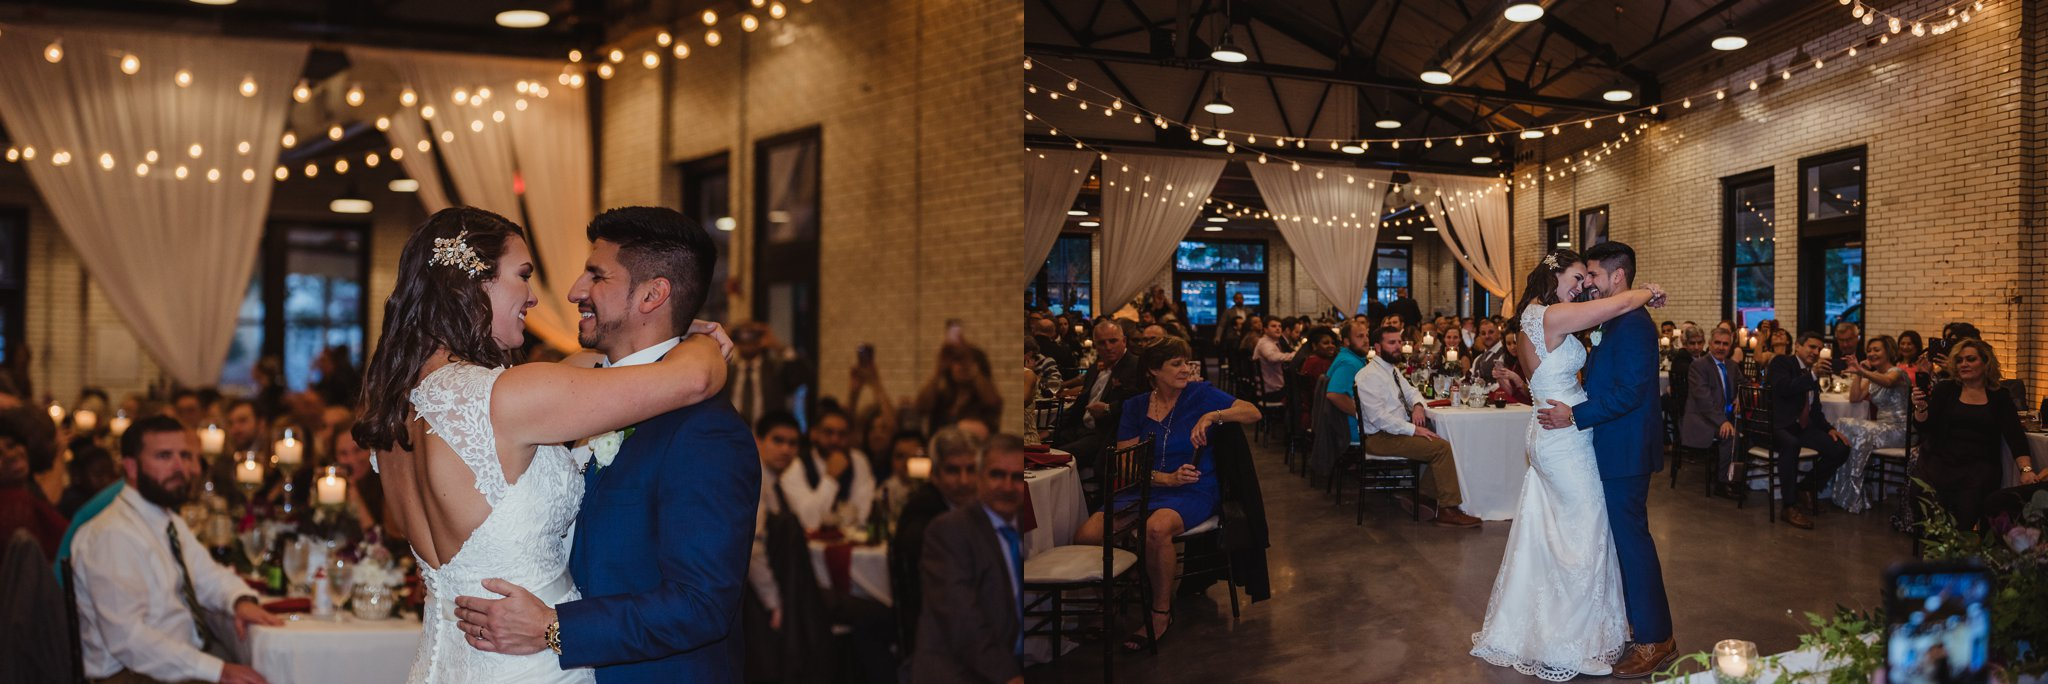 The bride and groom danced their first dance together at their wedding reception at Market Hall in downtown Raleigh, photos by Rose Trail Images.